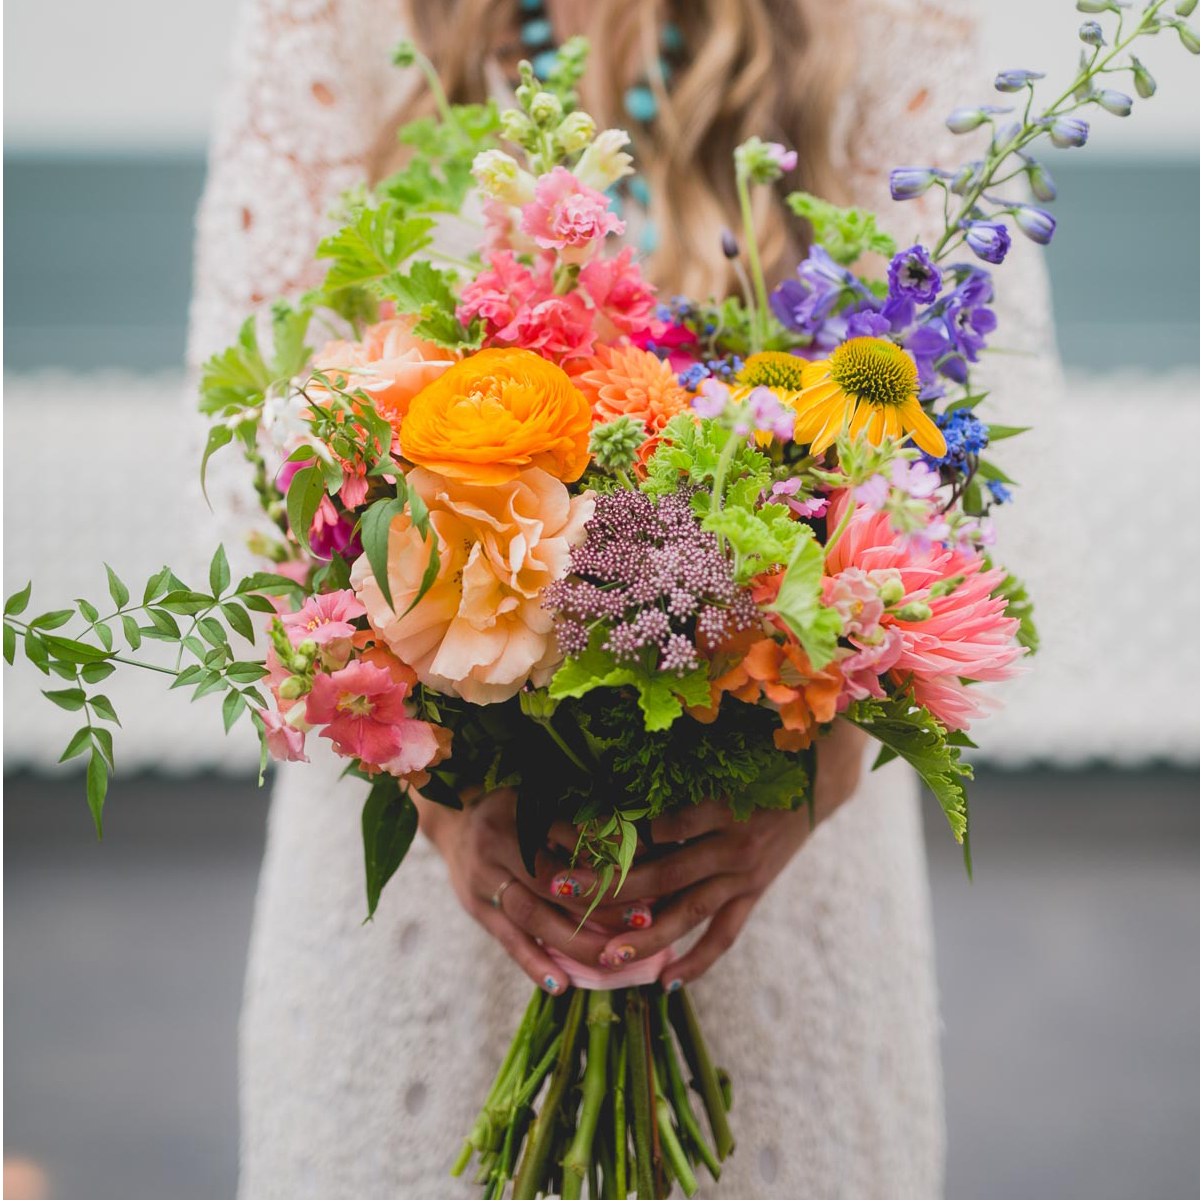 hilary_horvath_flowers_bridal_bouquet_color.jpg